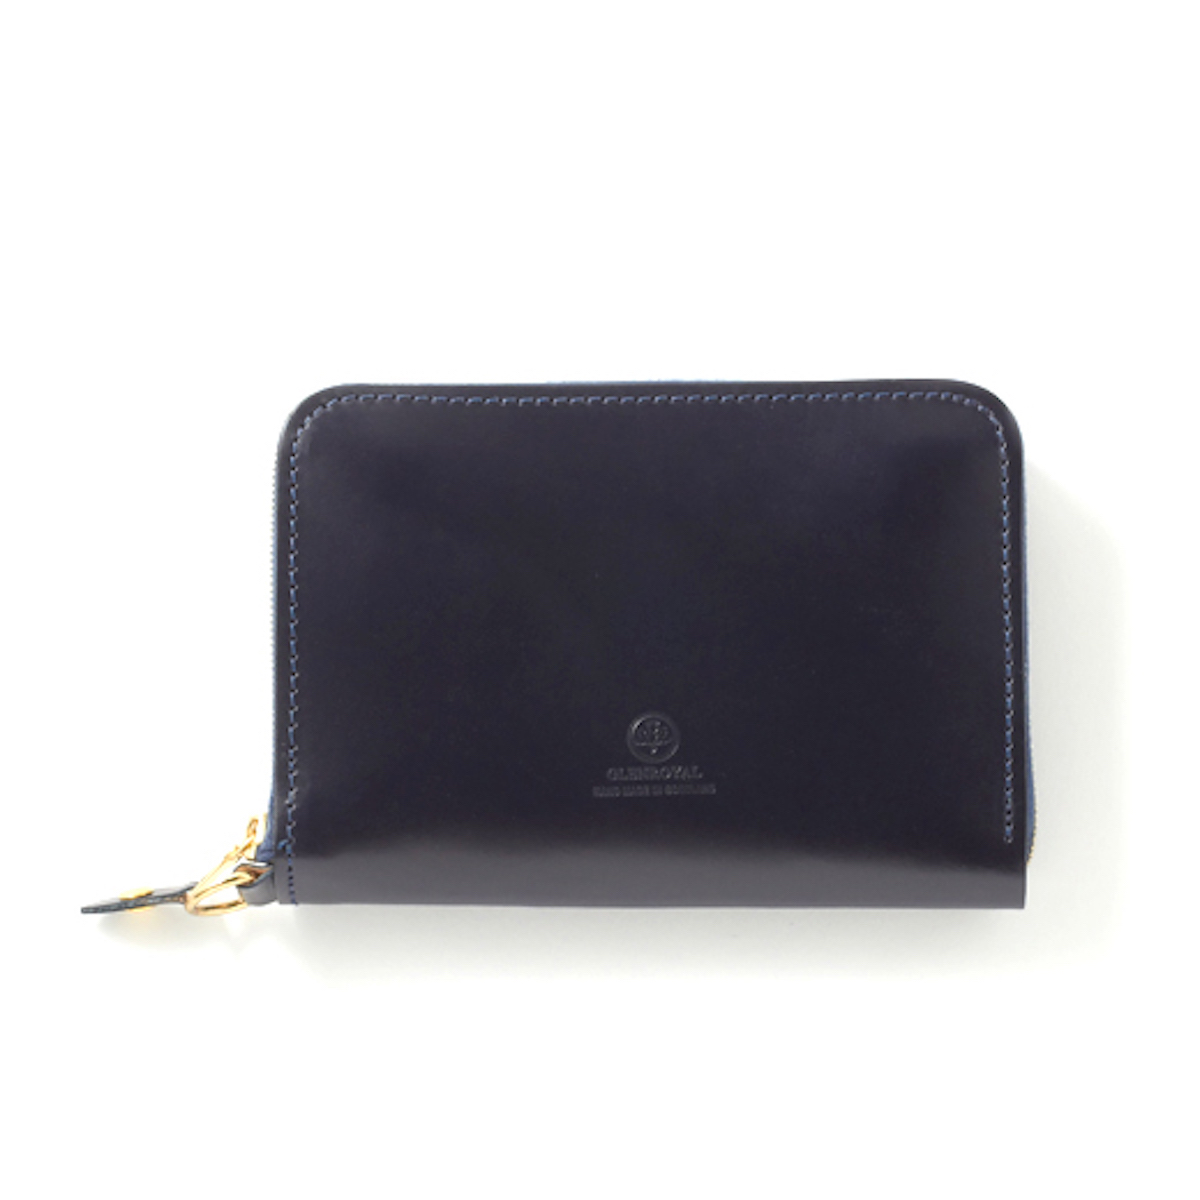 GLENROYAL / WALLET WITH DIVIDERS -DARK BLUE